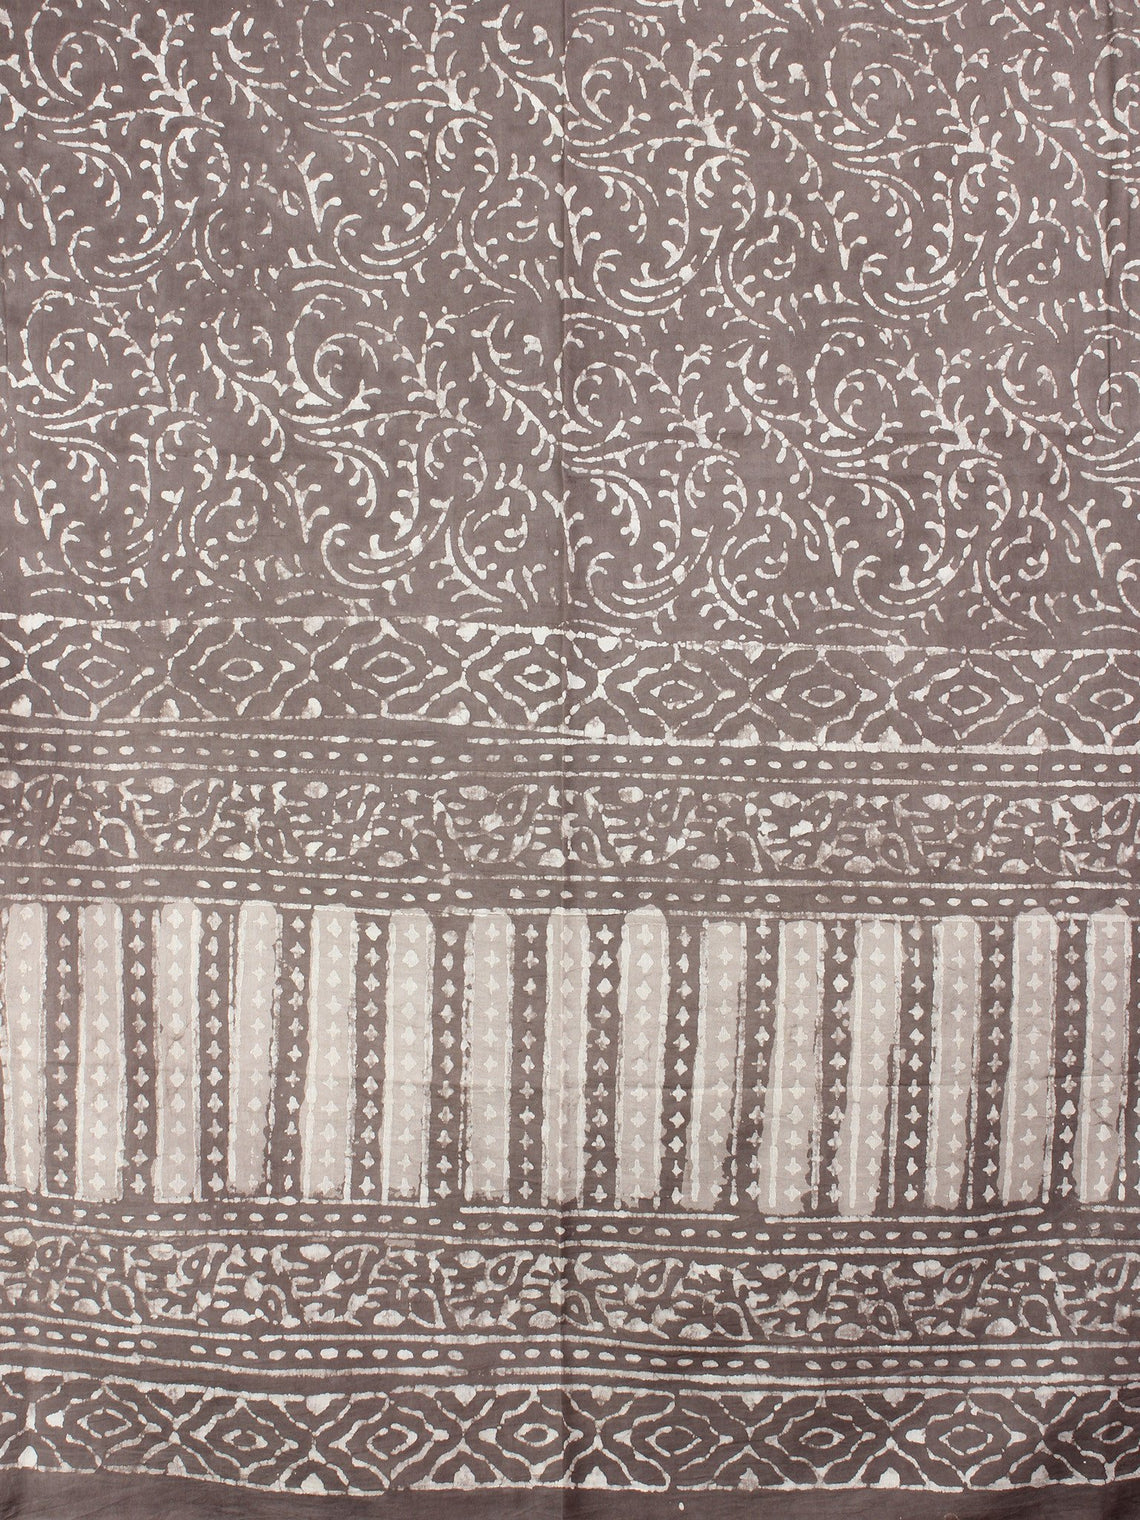 Beige White Cotton Mul Hand Block Printed Dupatta - D0417072